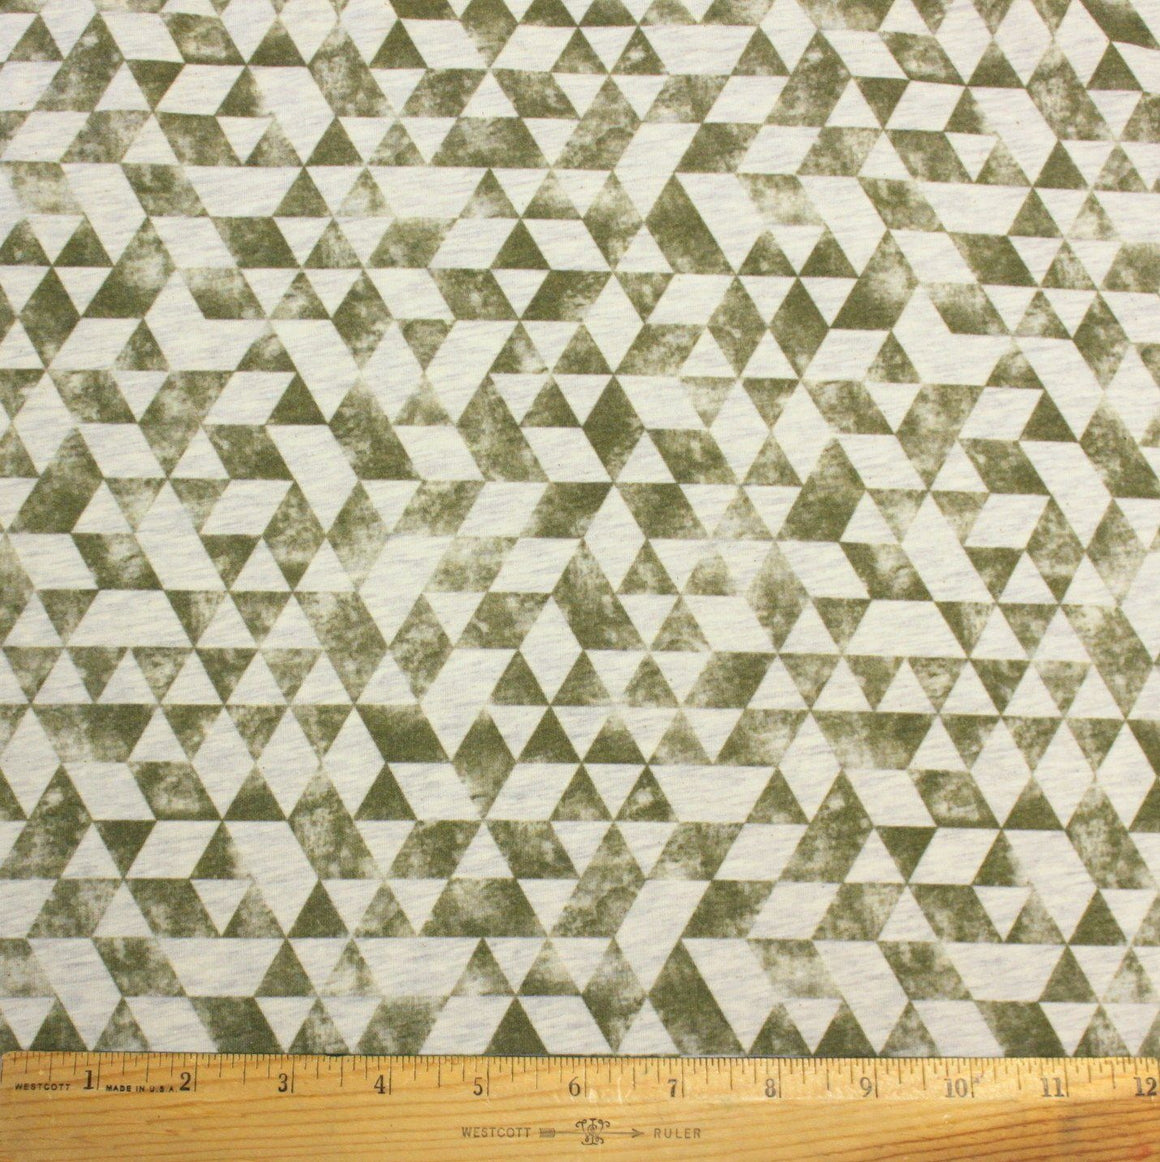 Olive Green Distressed Grunge Geometric Abstract Triangle on Oatmeal 4 Way Stretch Jersey Knit Fabric With Spandex, 1 Yard